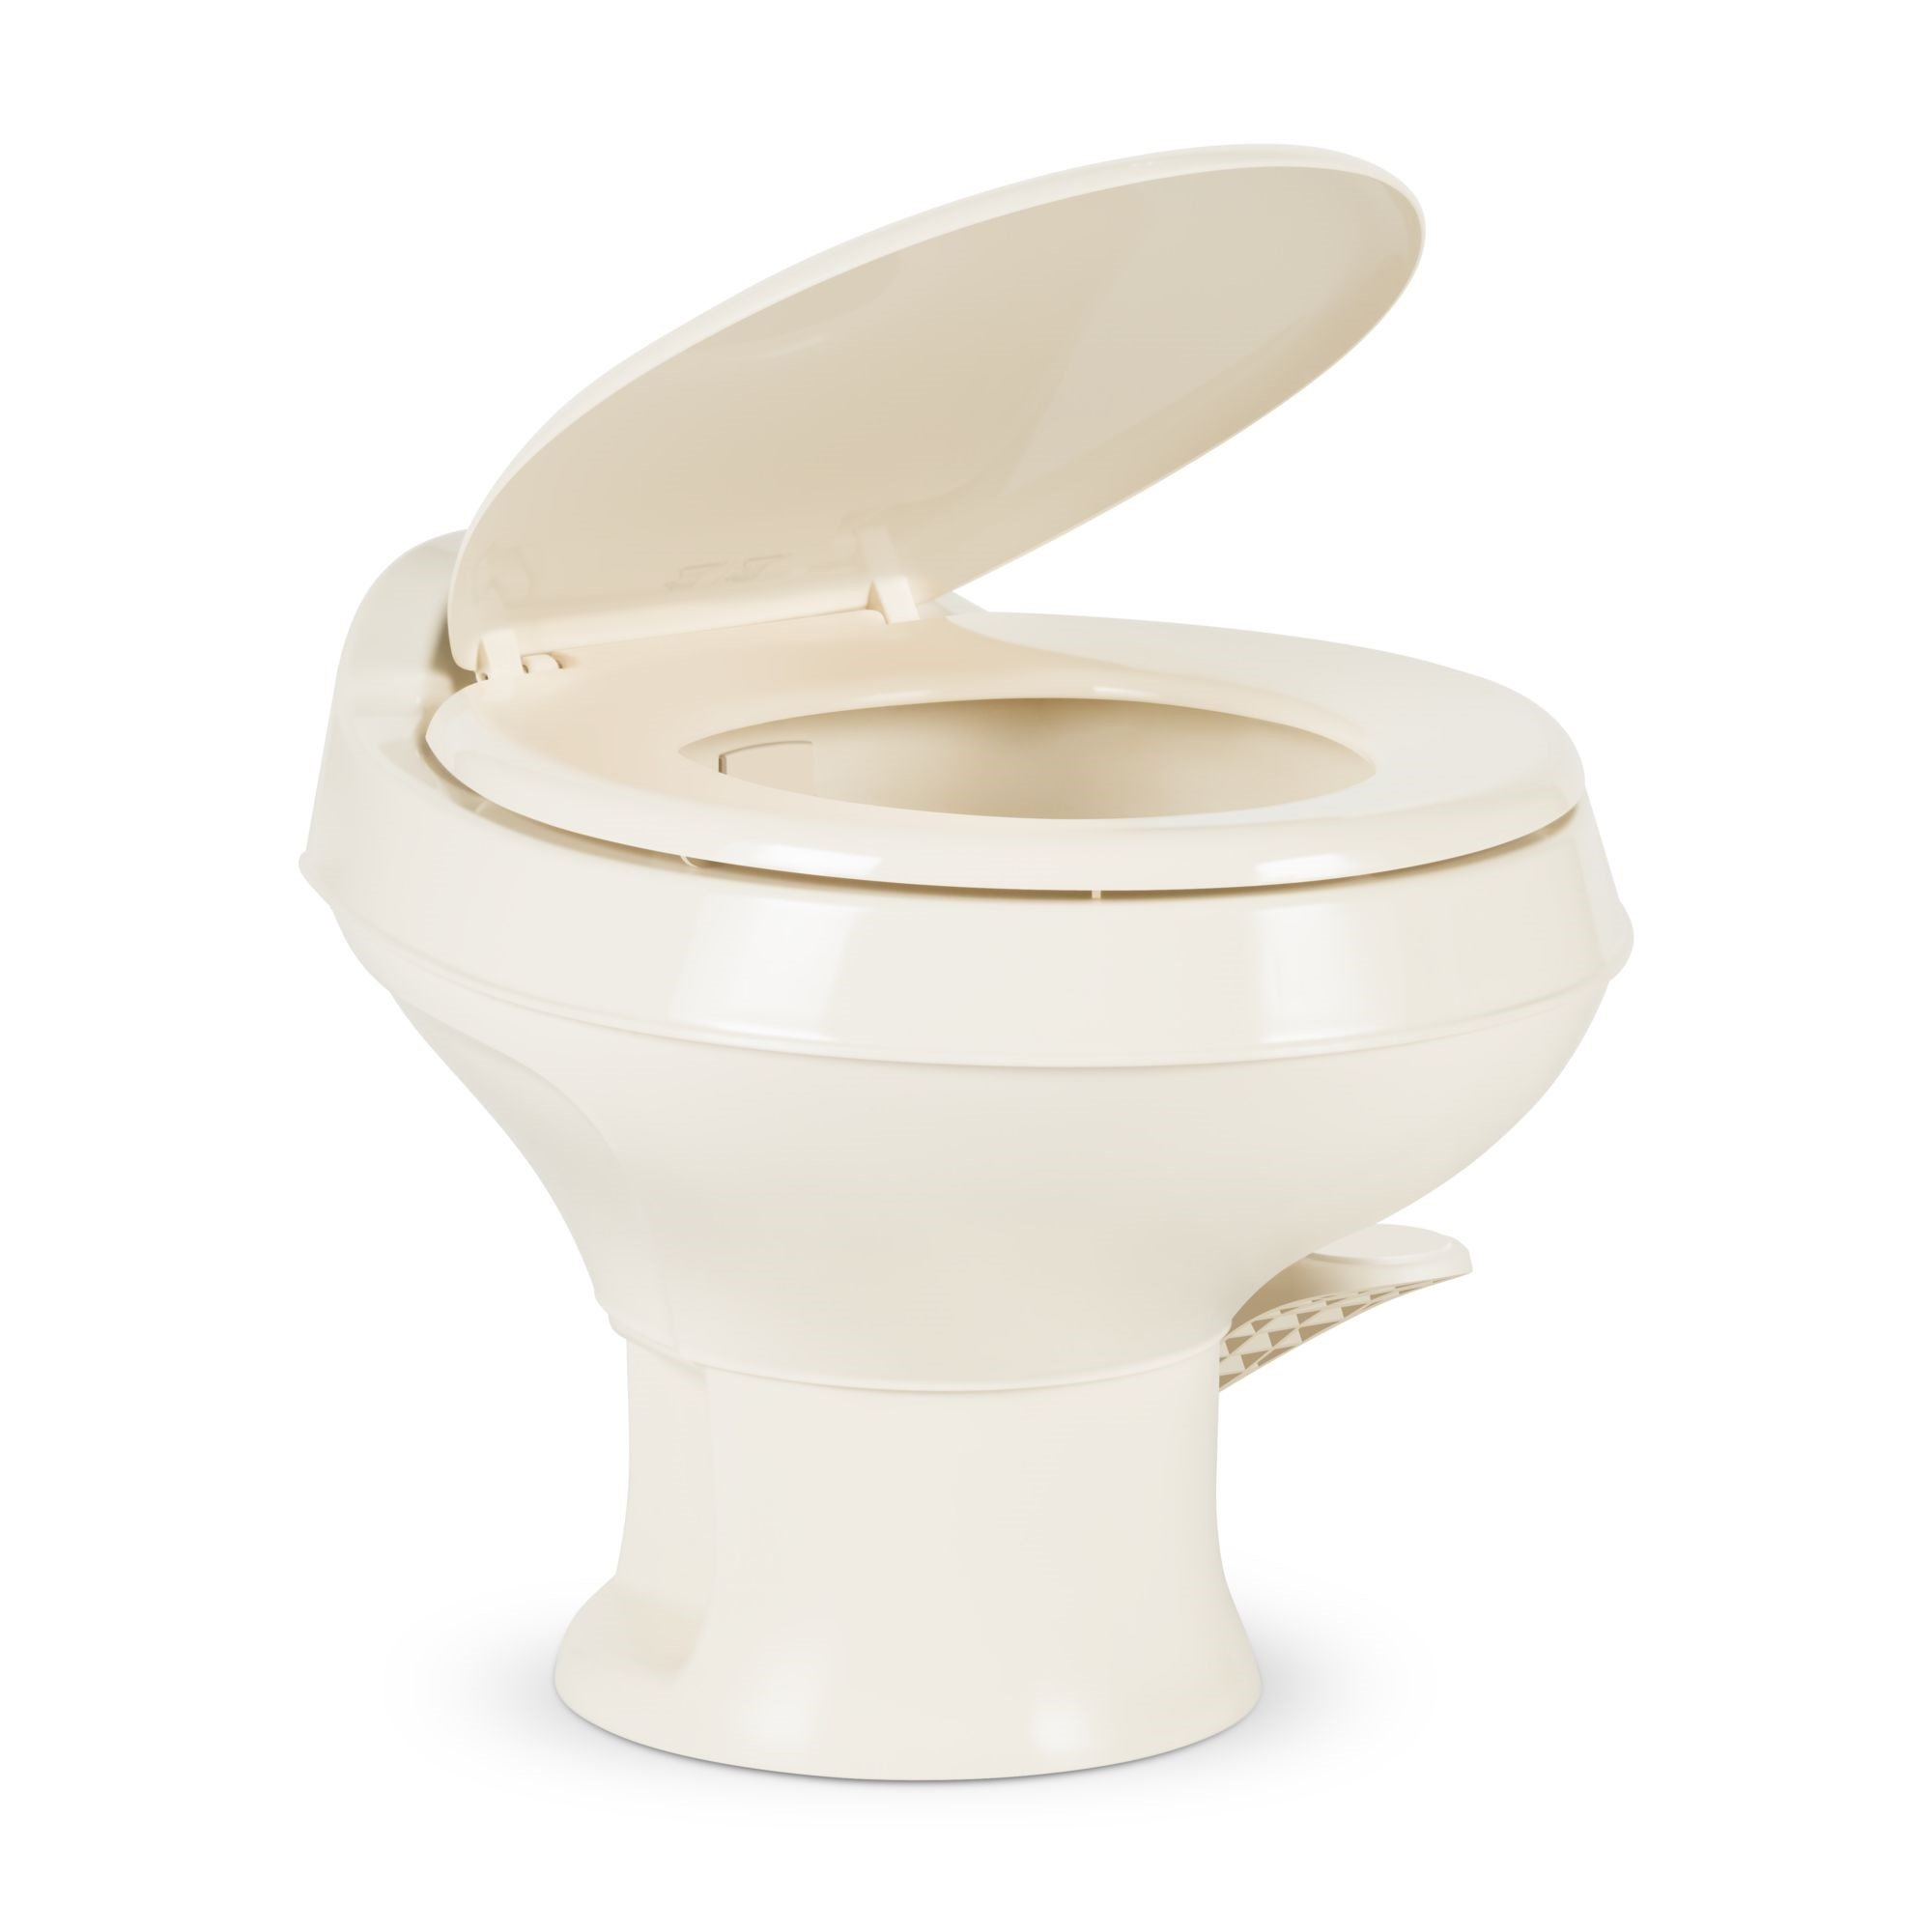 Dometic 300 Series Low Profile Toilet w/ Hand Spray, Bone by Dometic (Image #1)